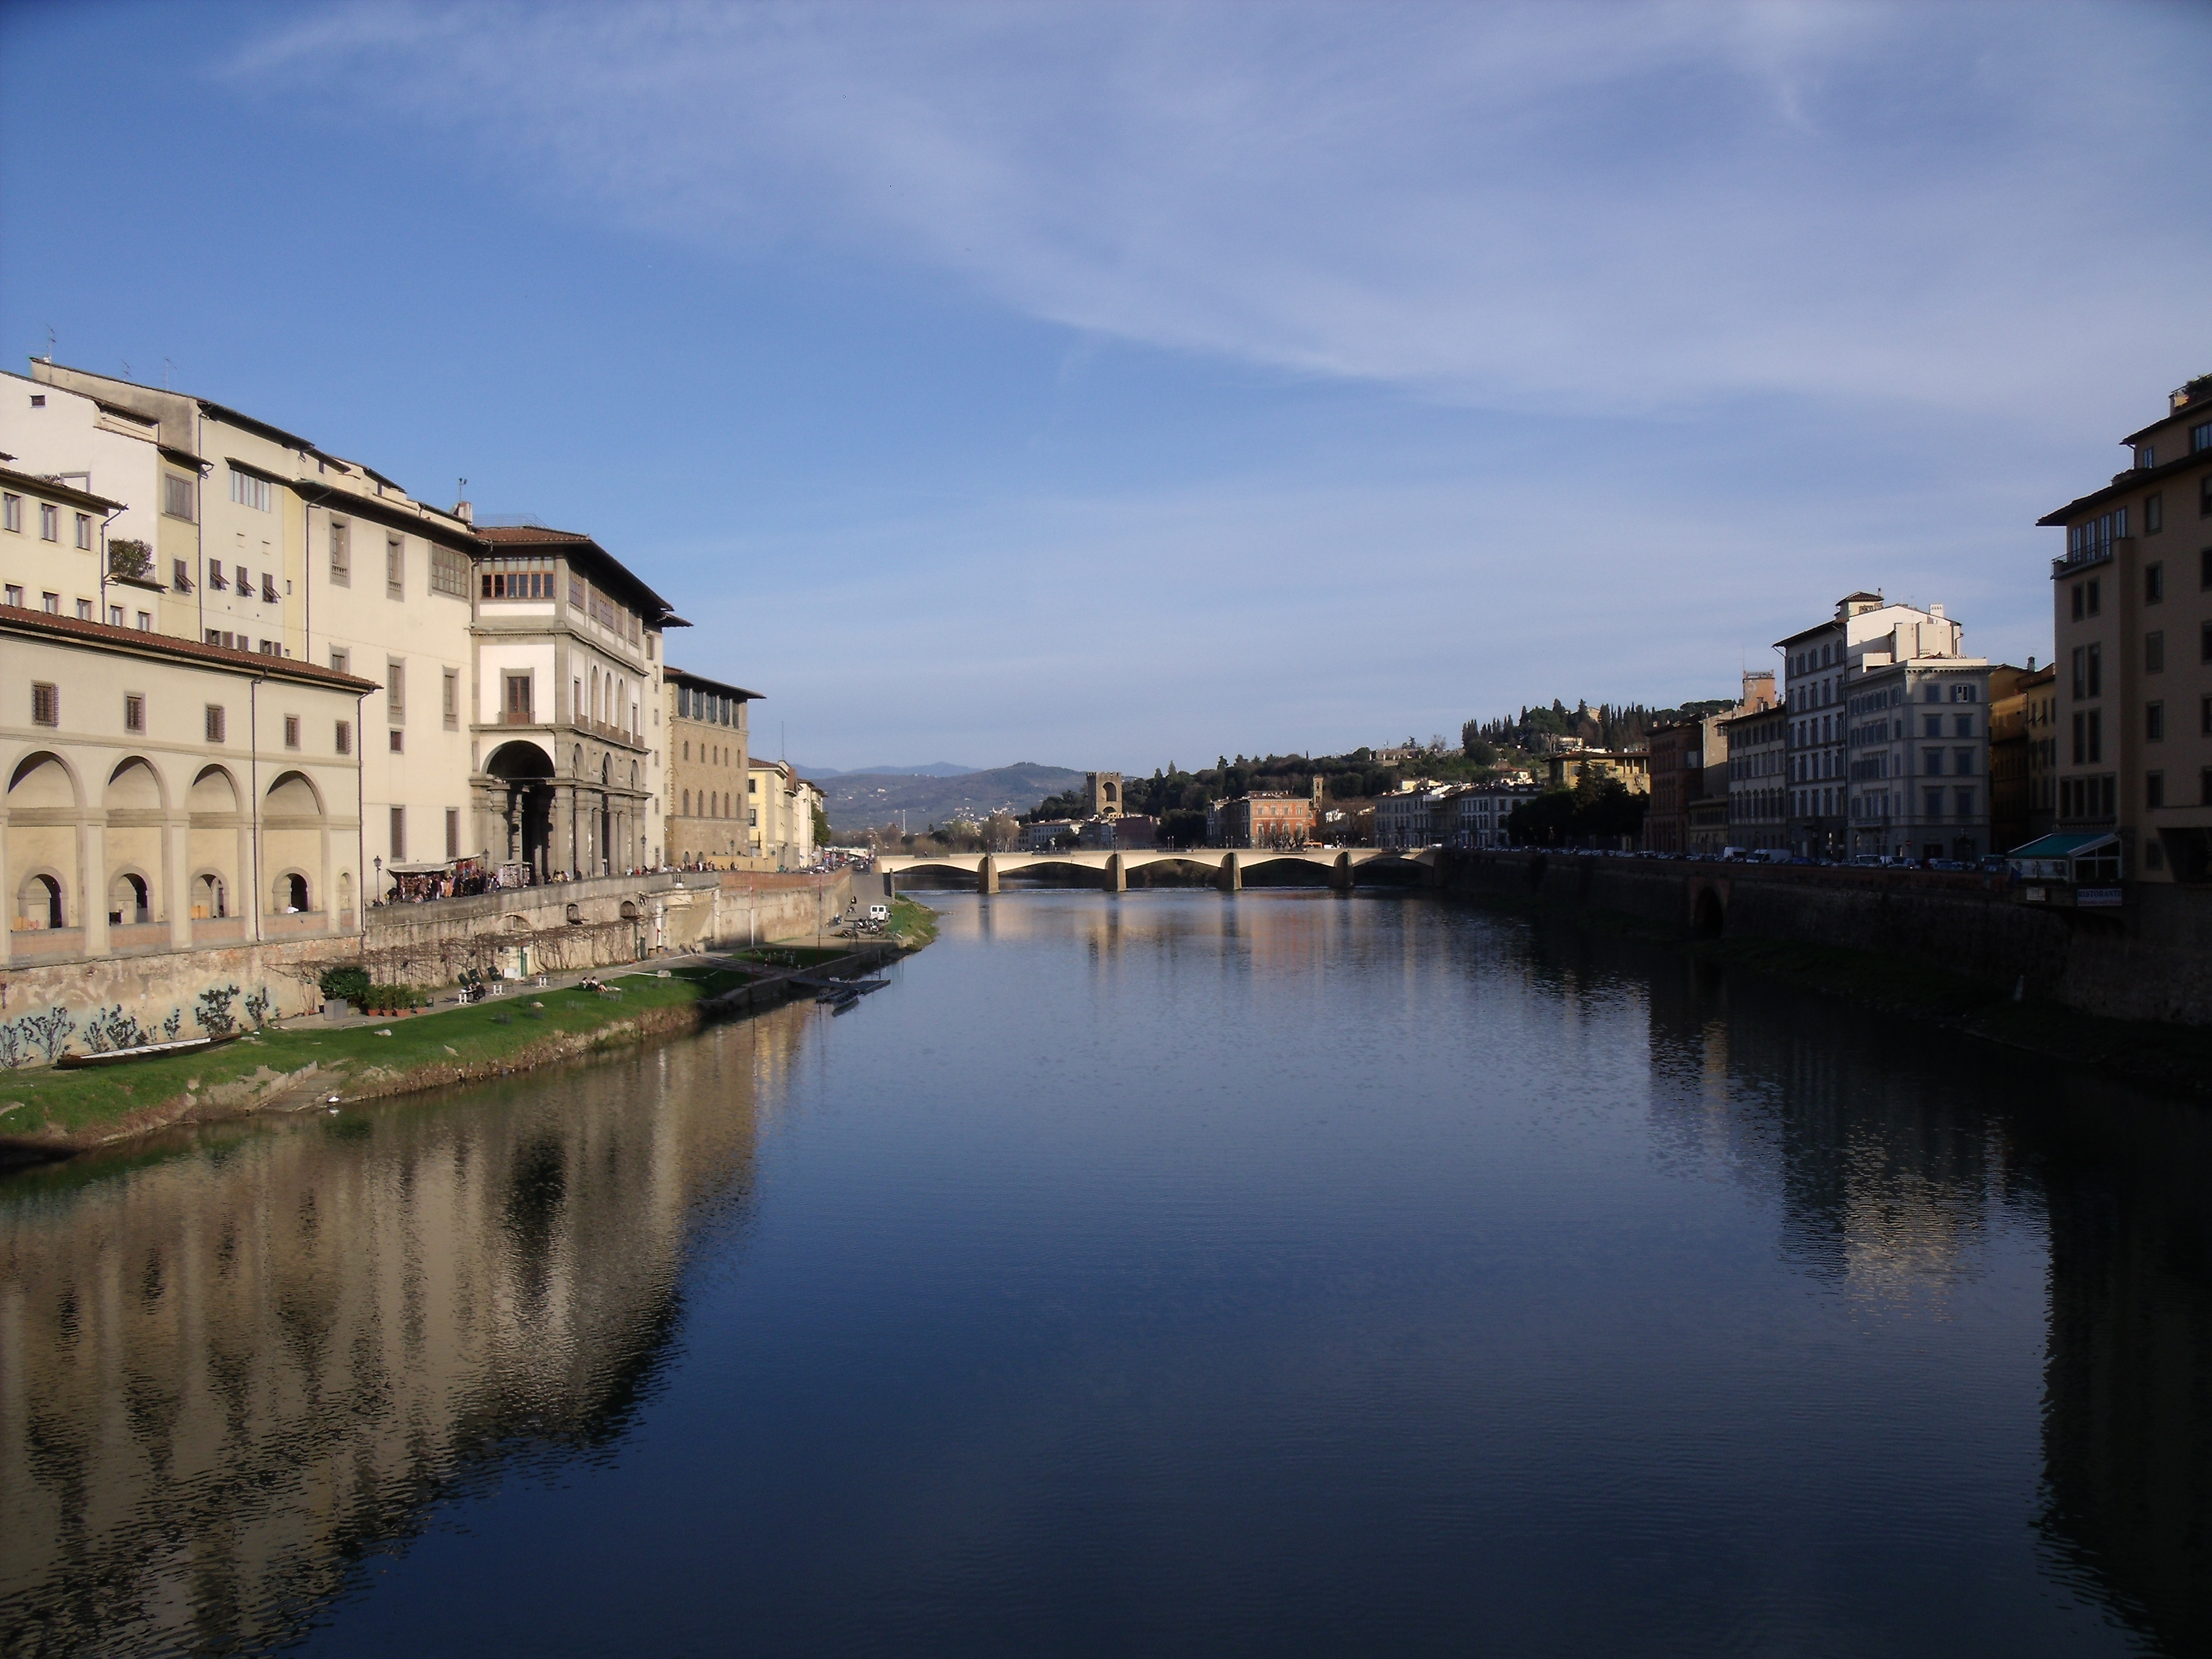 View of the Arno from the [[Ponte Vecchio]]